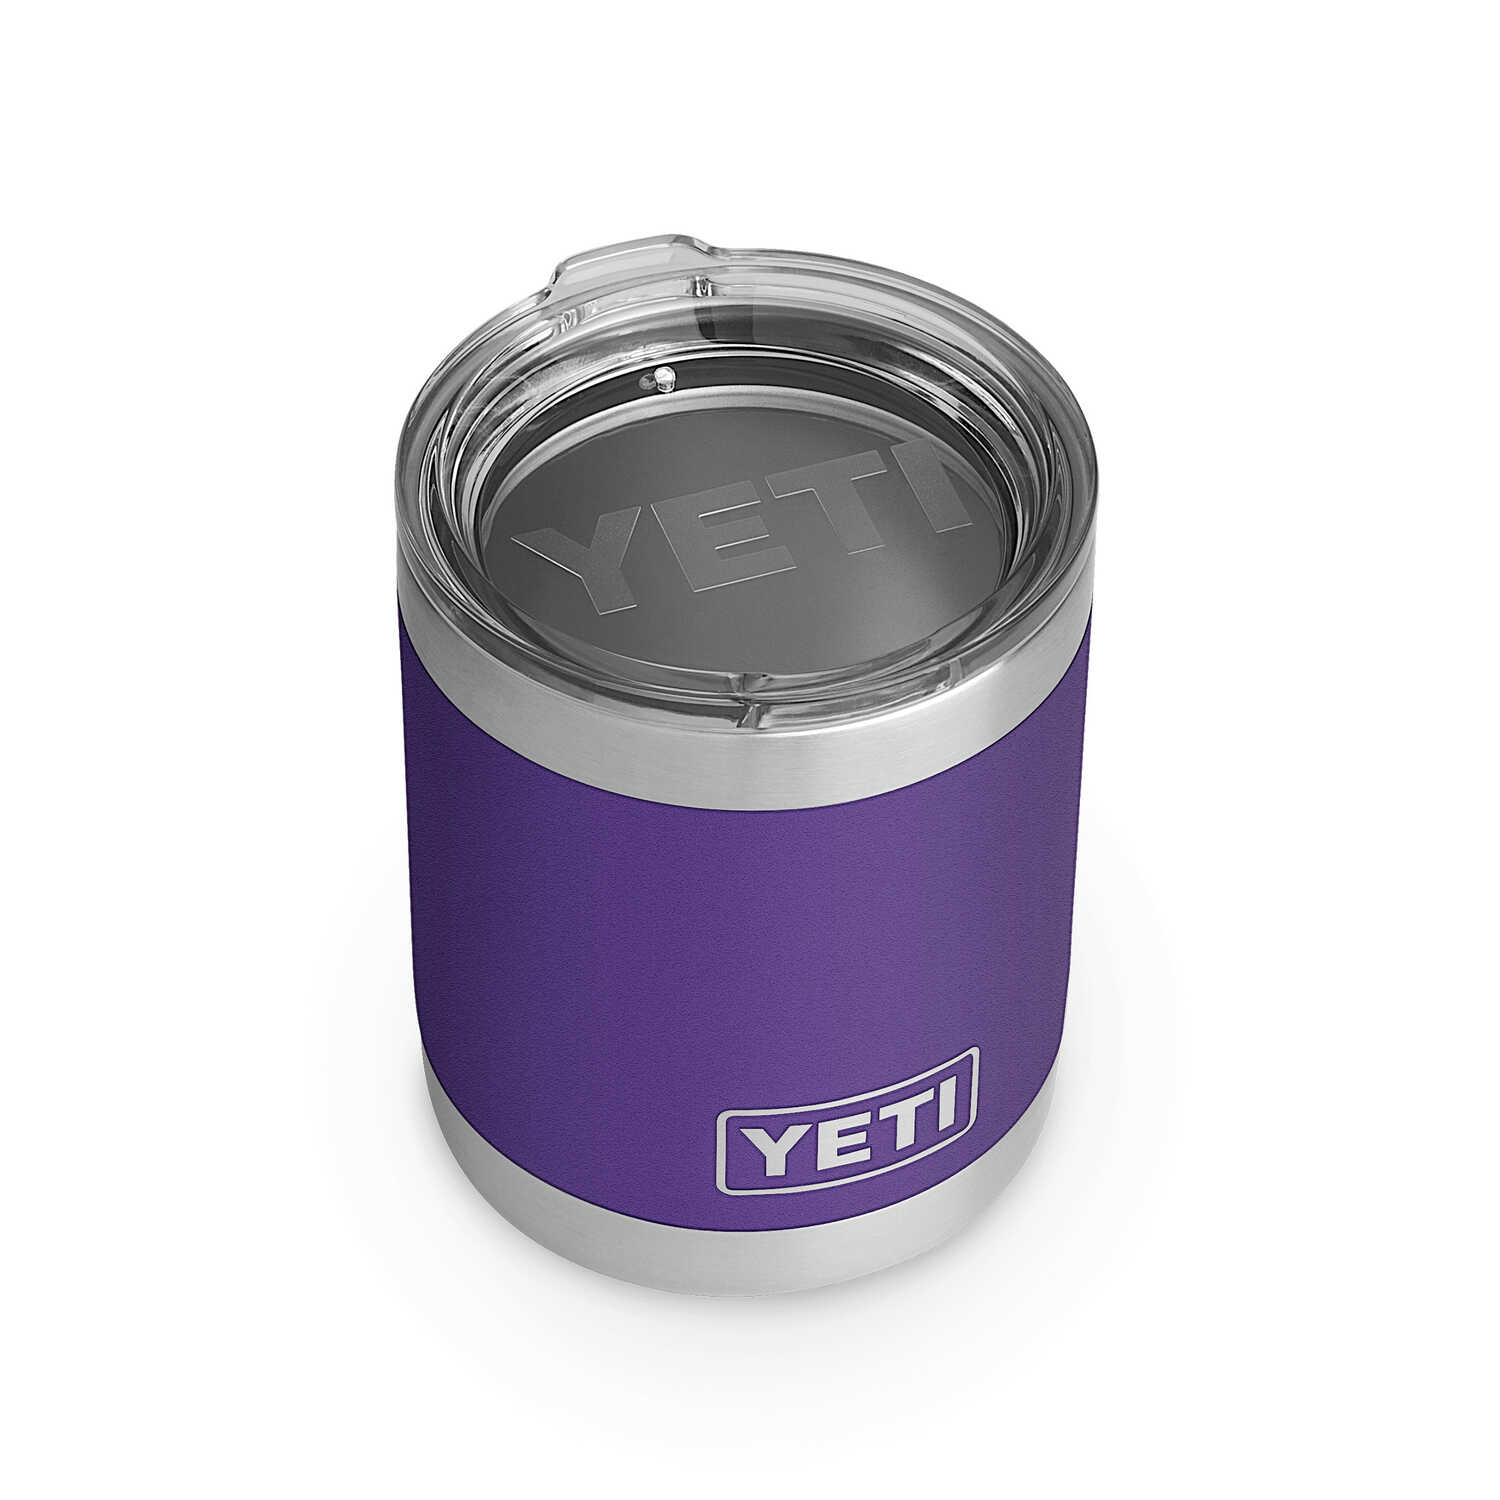 YETI  Rambler  10 oz. Lowball  Insulated Tumbler  Peak Purple